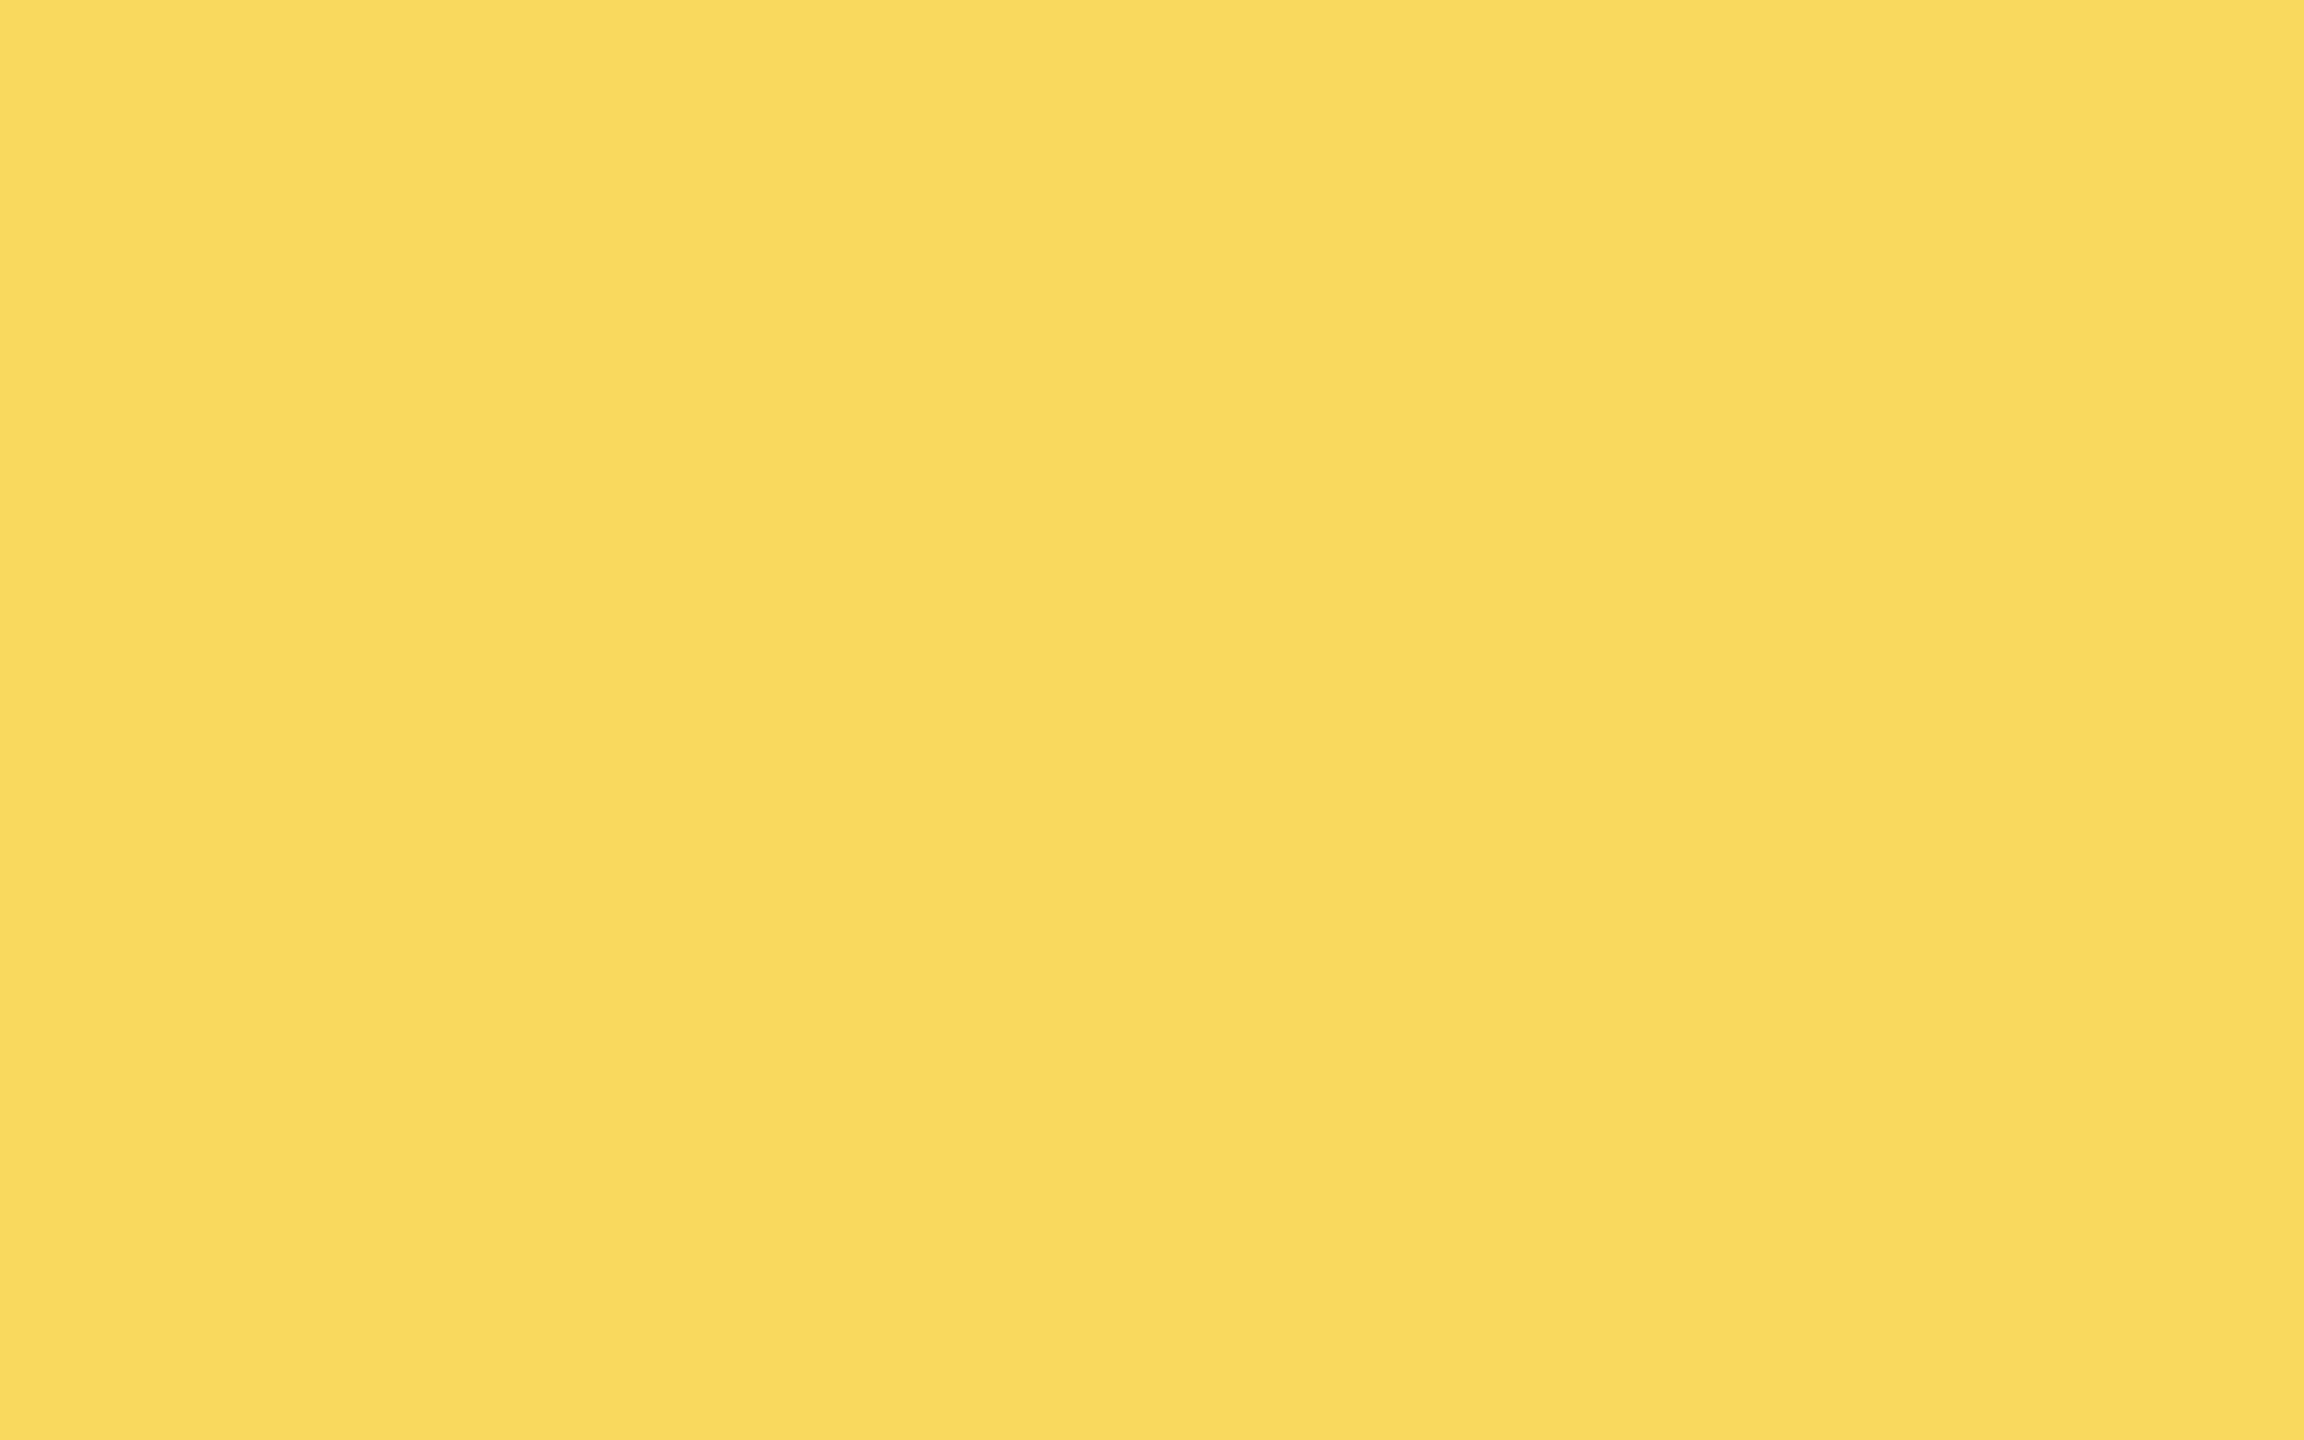 2304x1440 Royal Yellow Solid Color Background